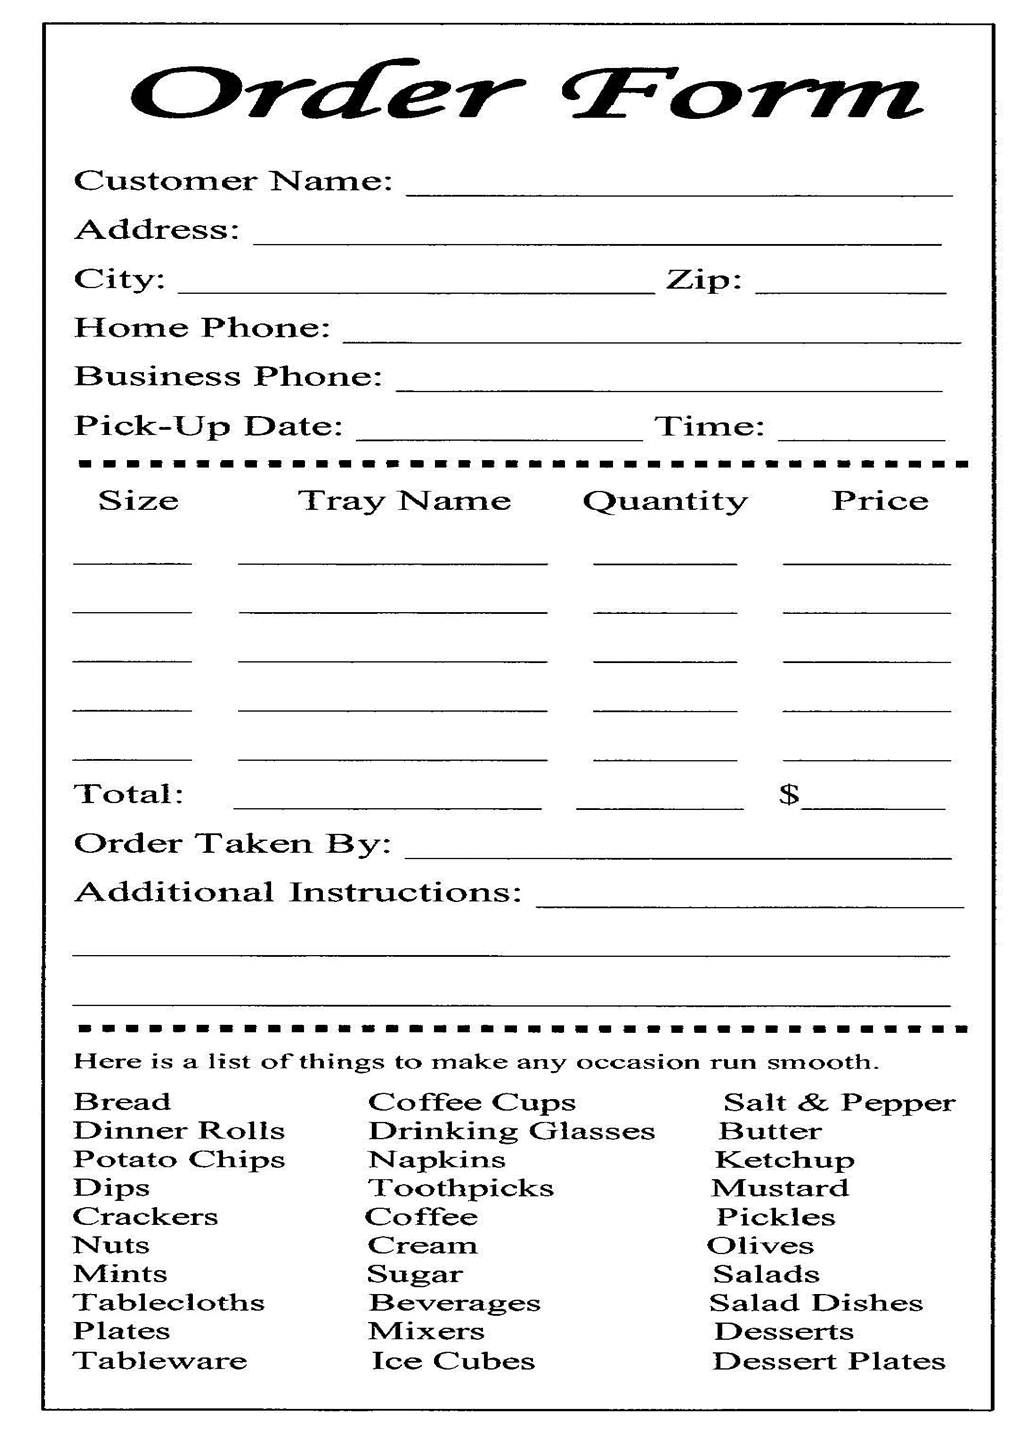 catering order form template - Dorit.mercatodos.co